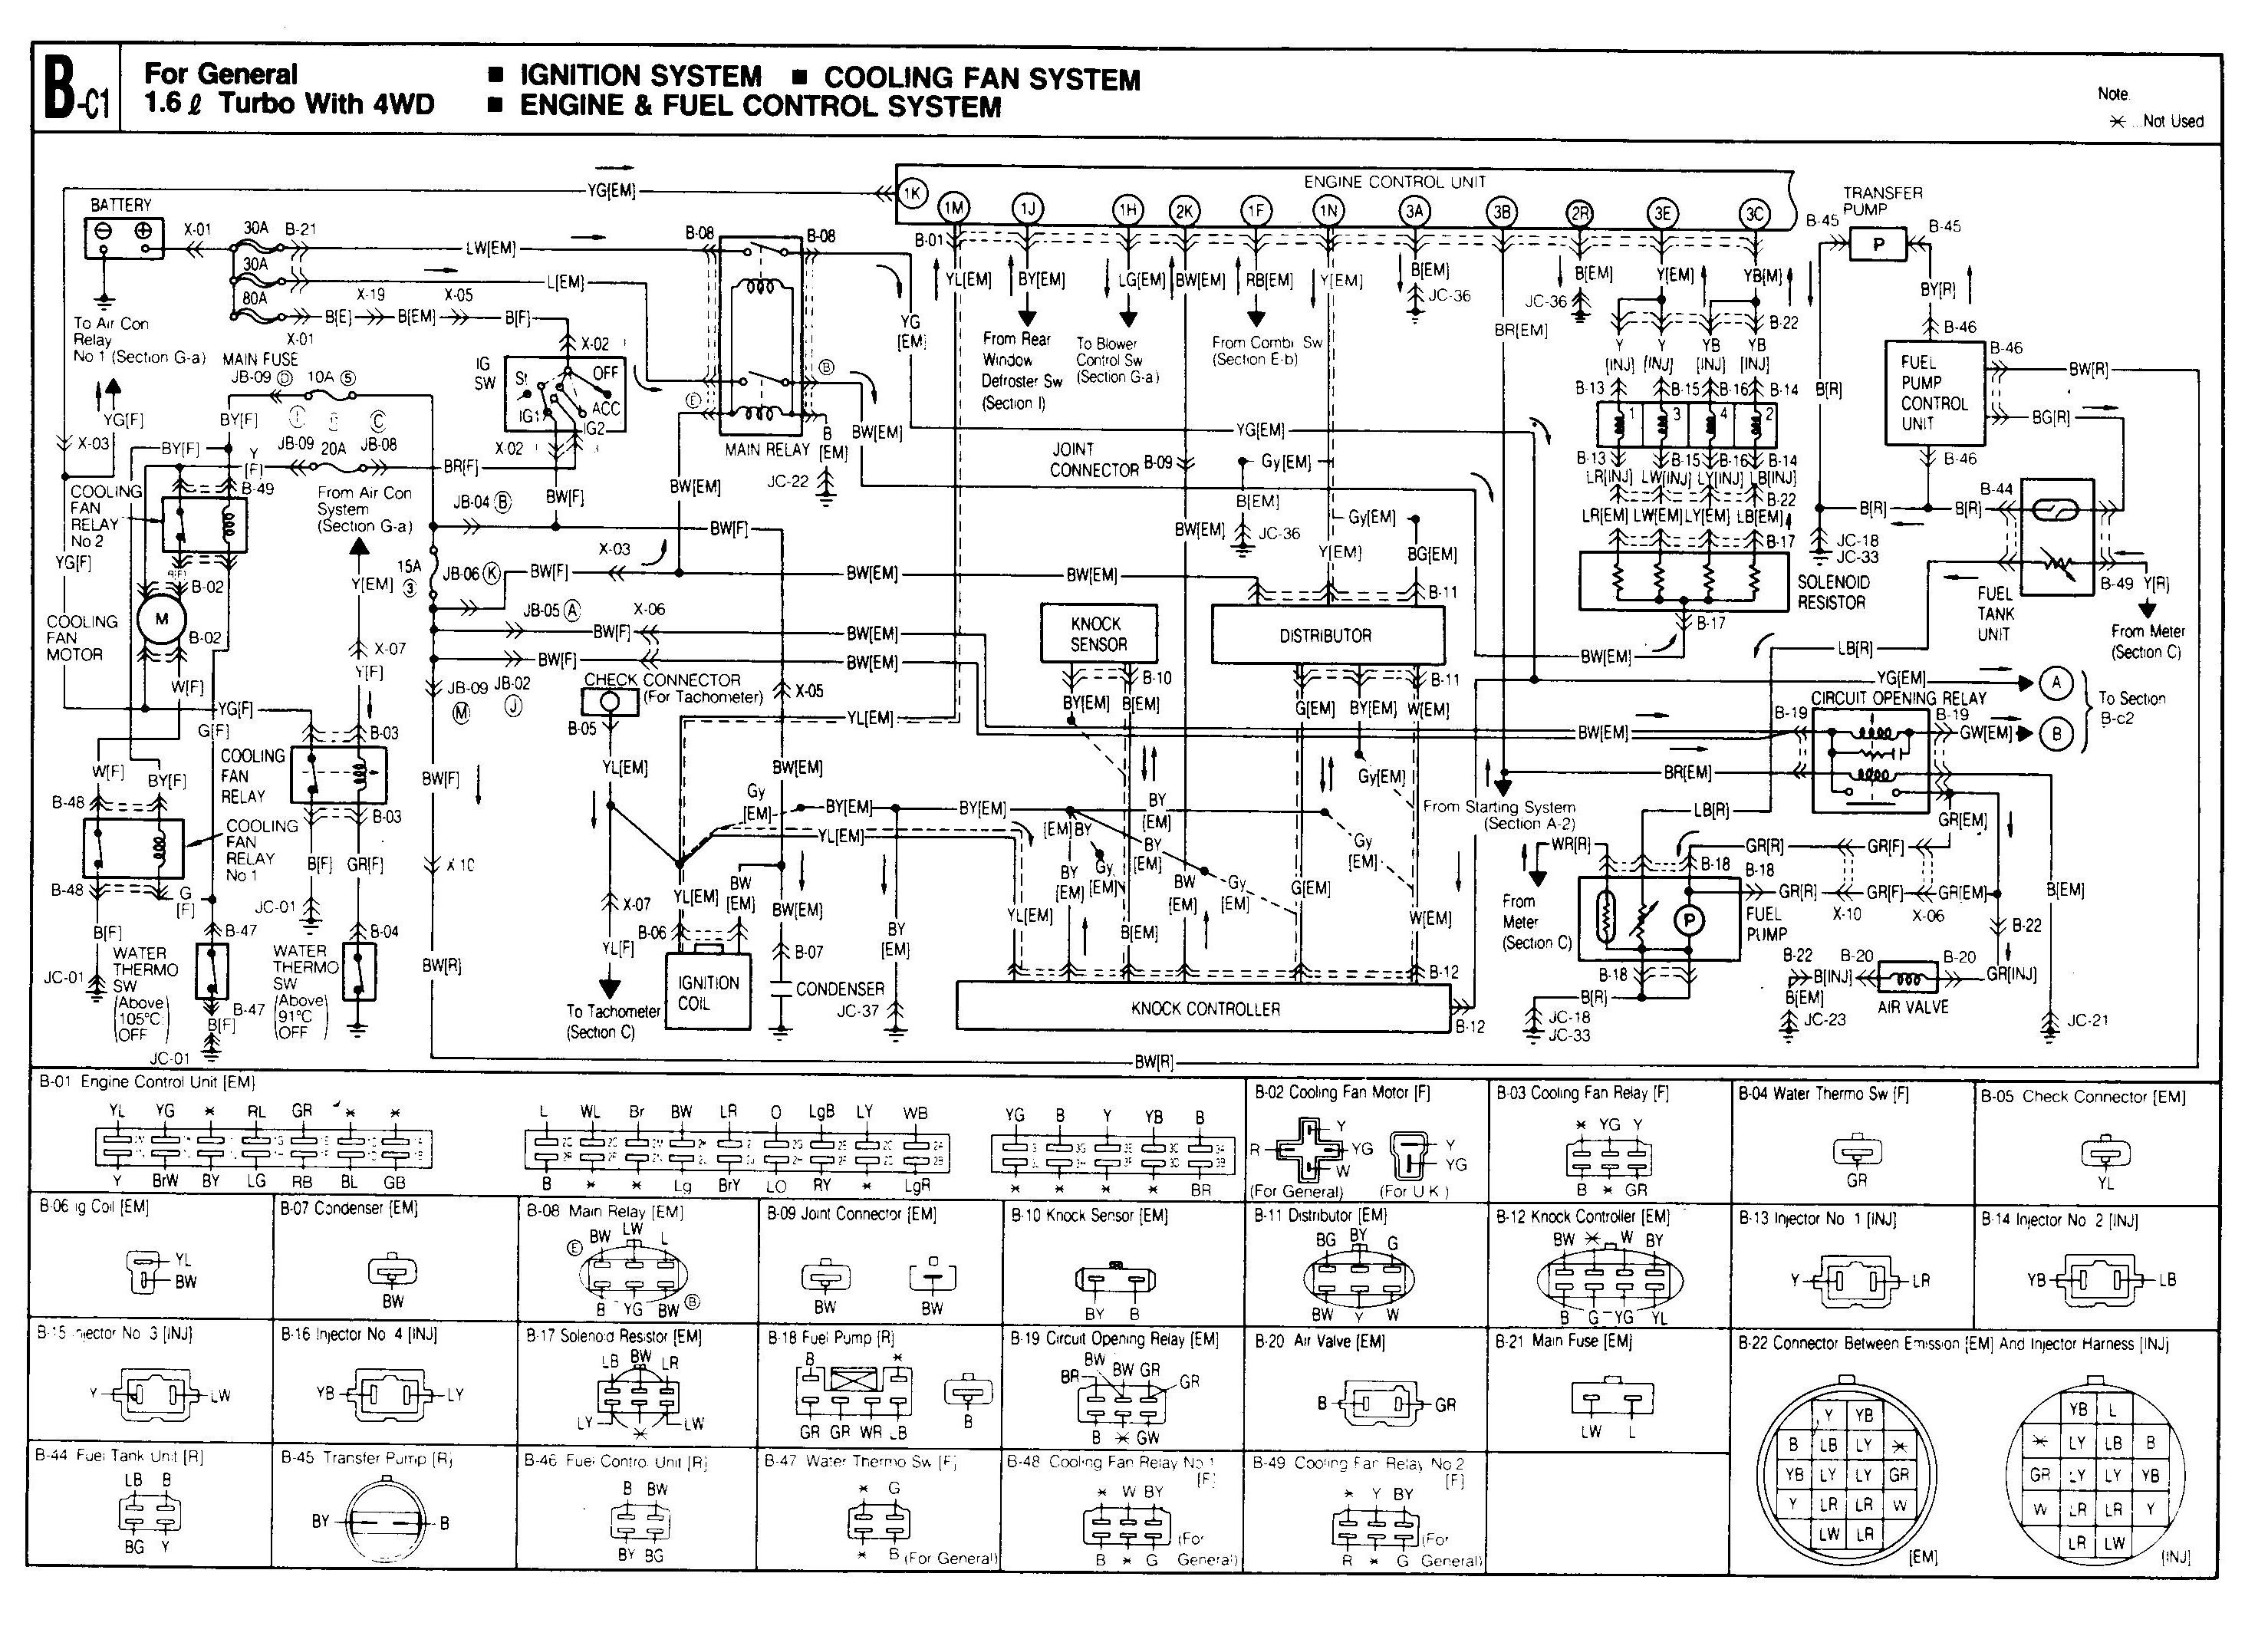 2008 mazda 3 engine diagram